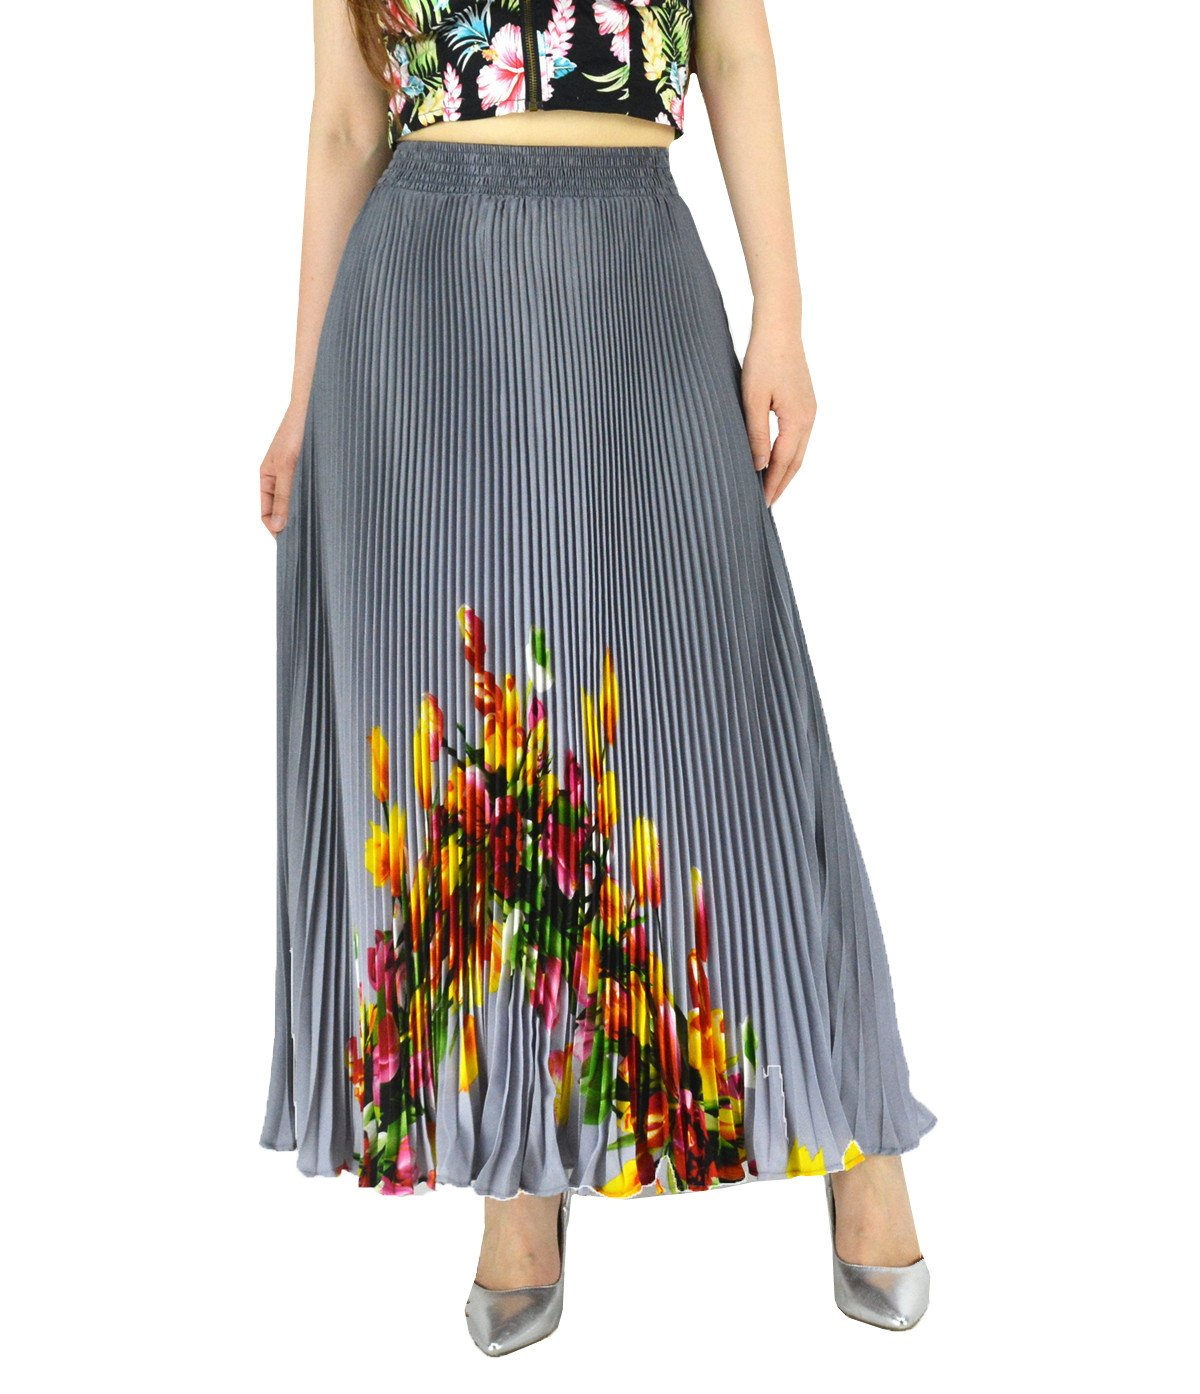 YSJ Womens Pleated Long Maxi Skirt - 35.4'' Chiffon Floral Vintage Bohemian Full Skirts (Grey 1702)